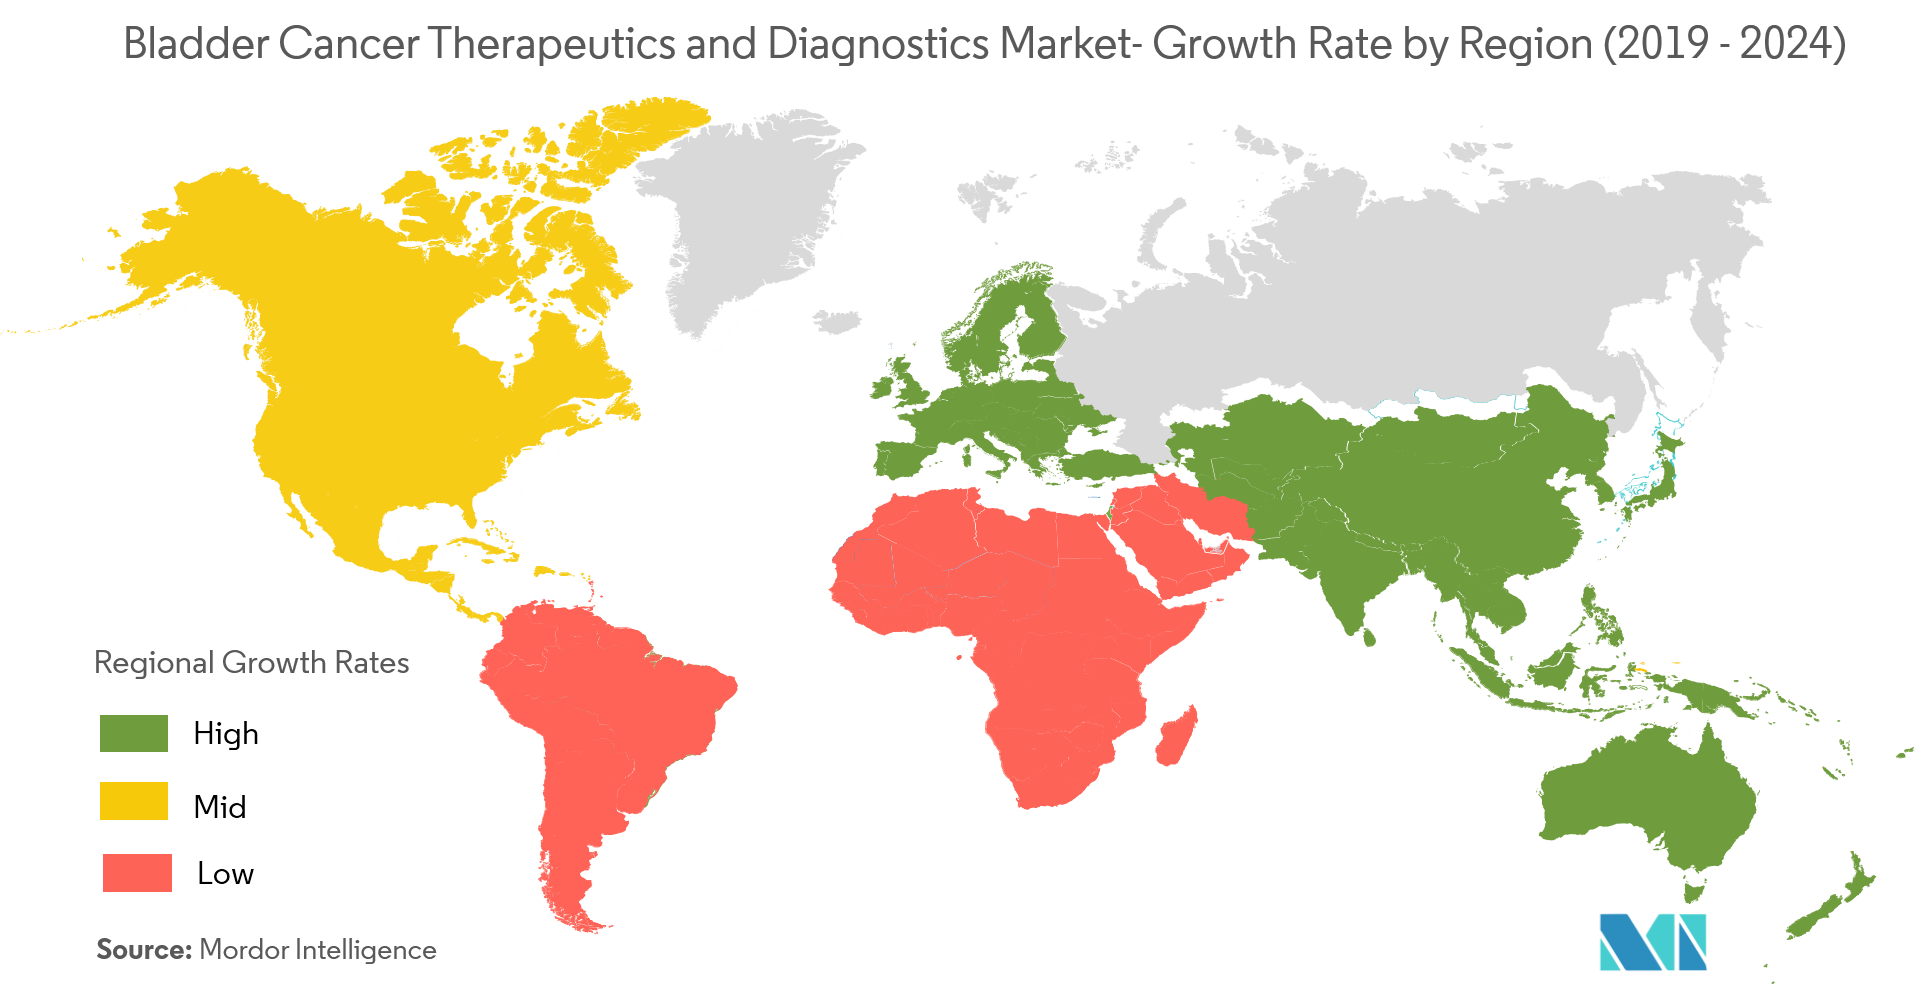 3_Injectable Drug Delivery Devices Market